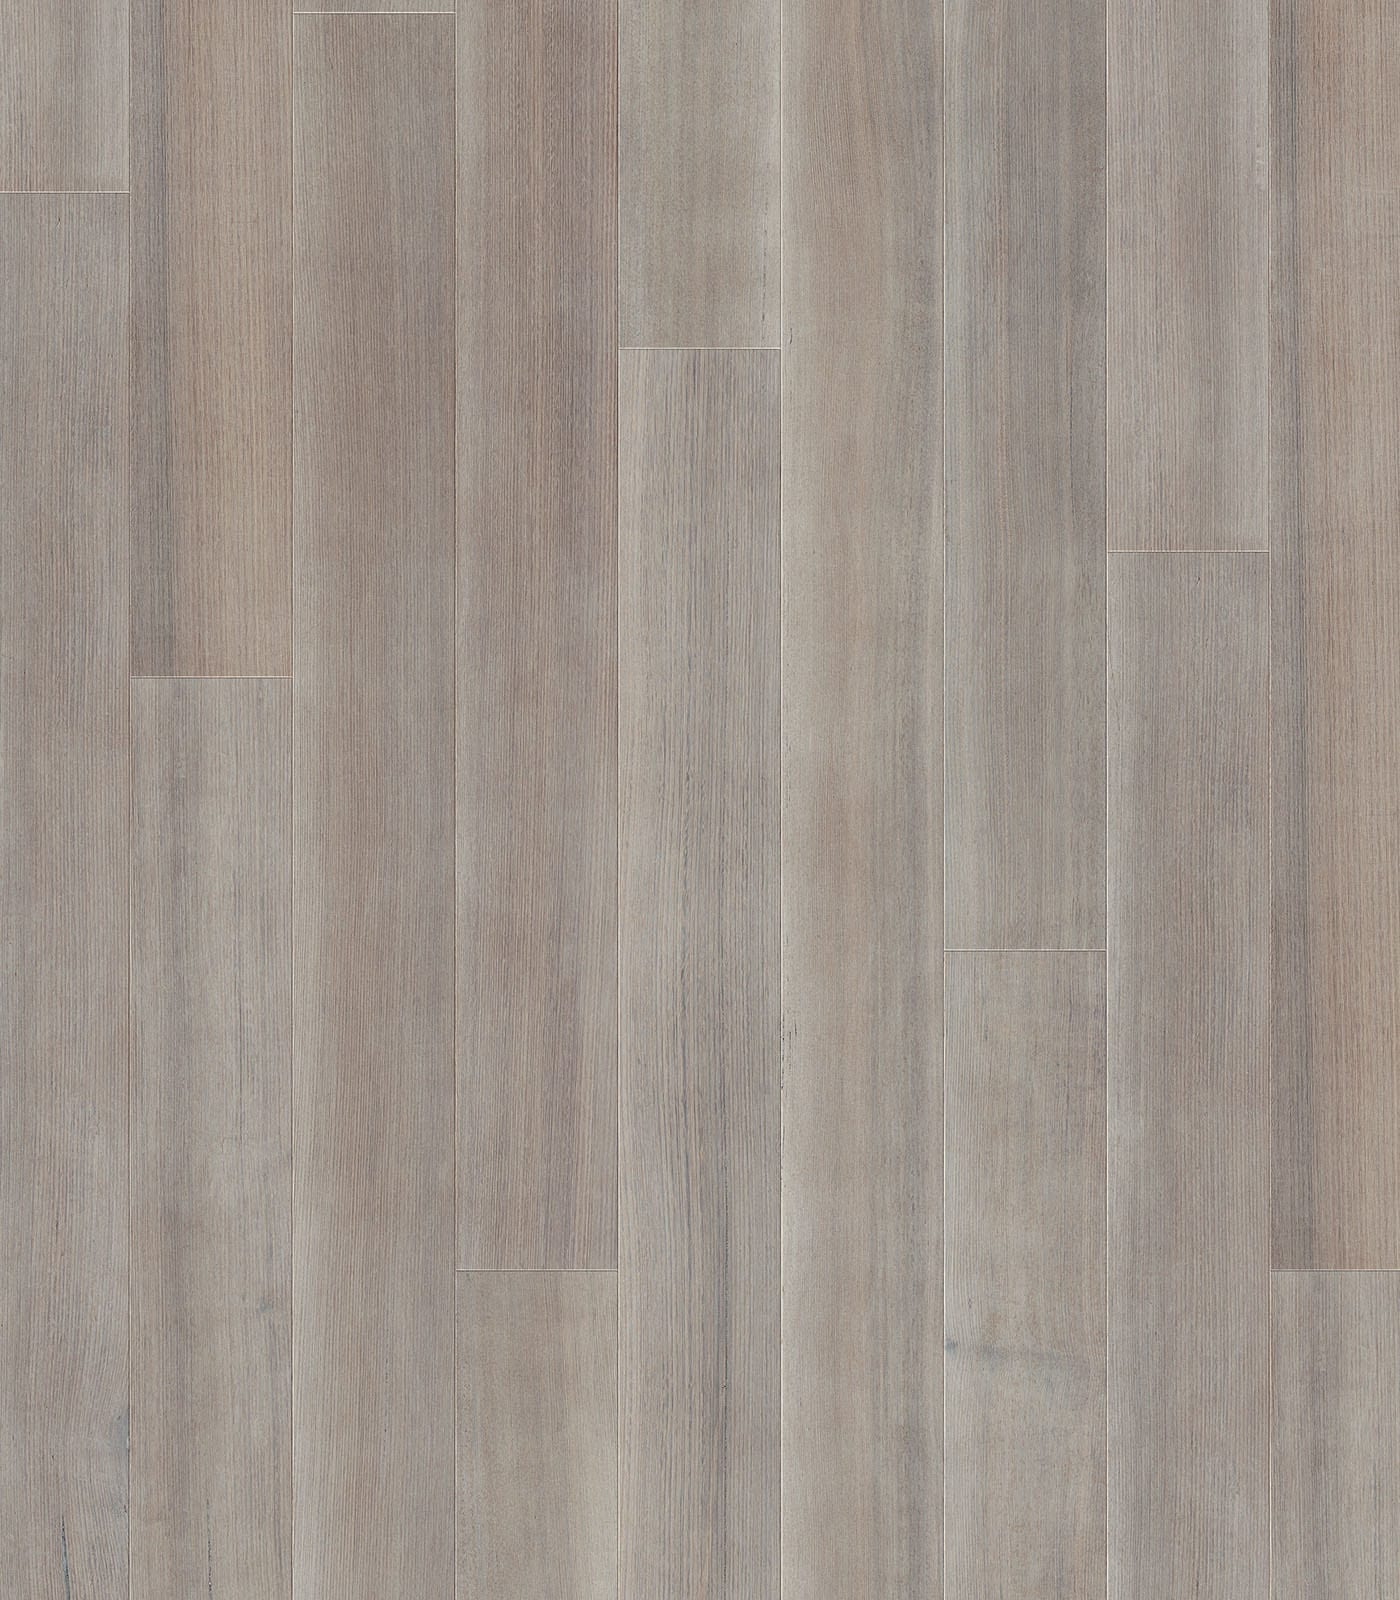 Adelaide-After Oak Collection-Tasmanain Oak floors-flat